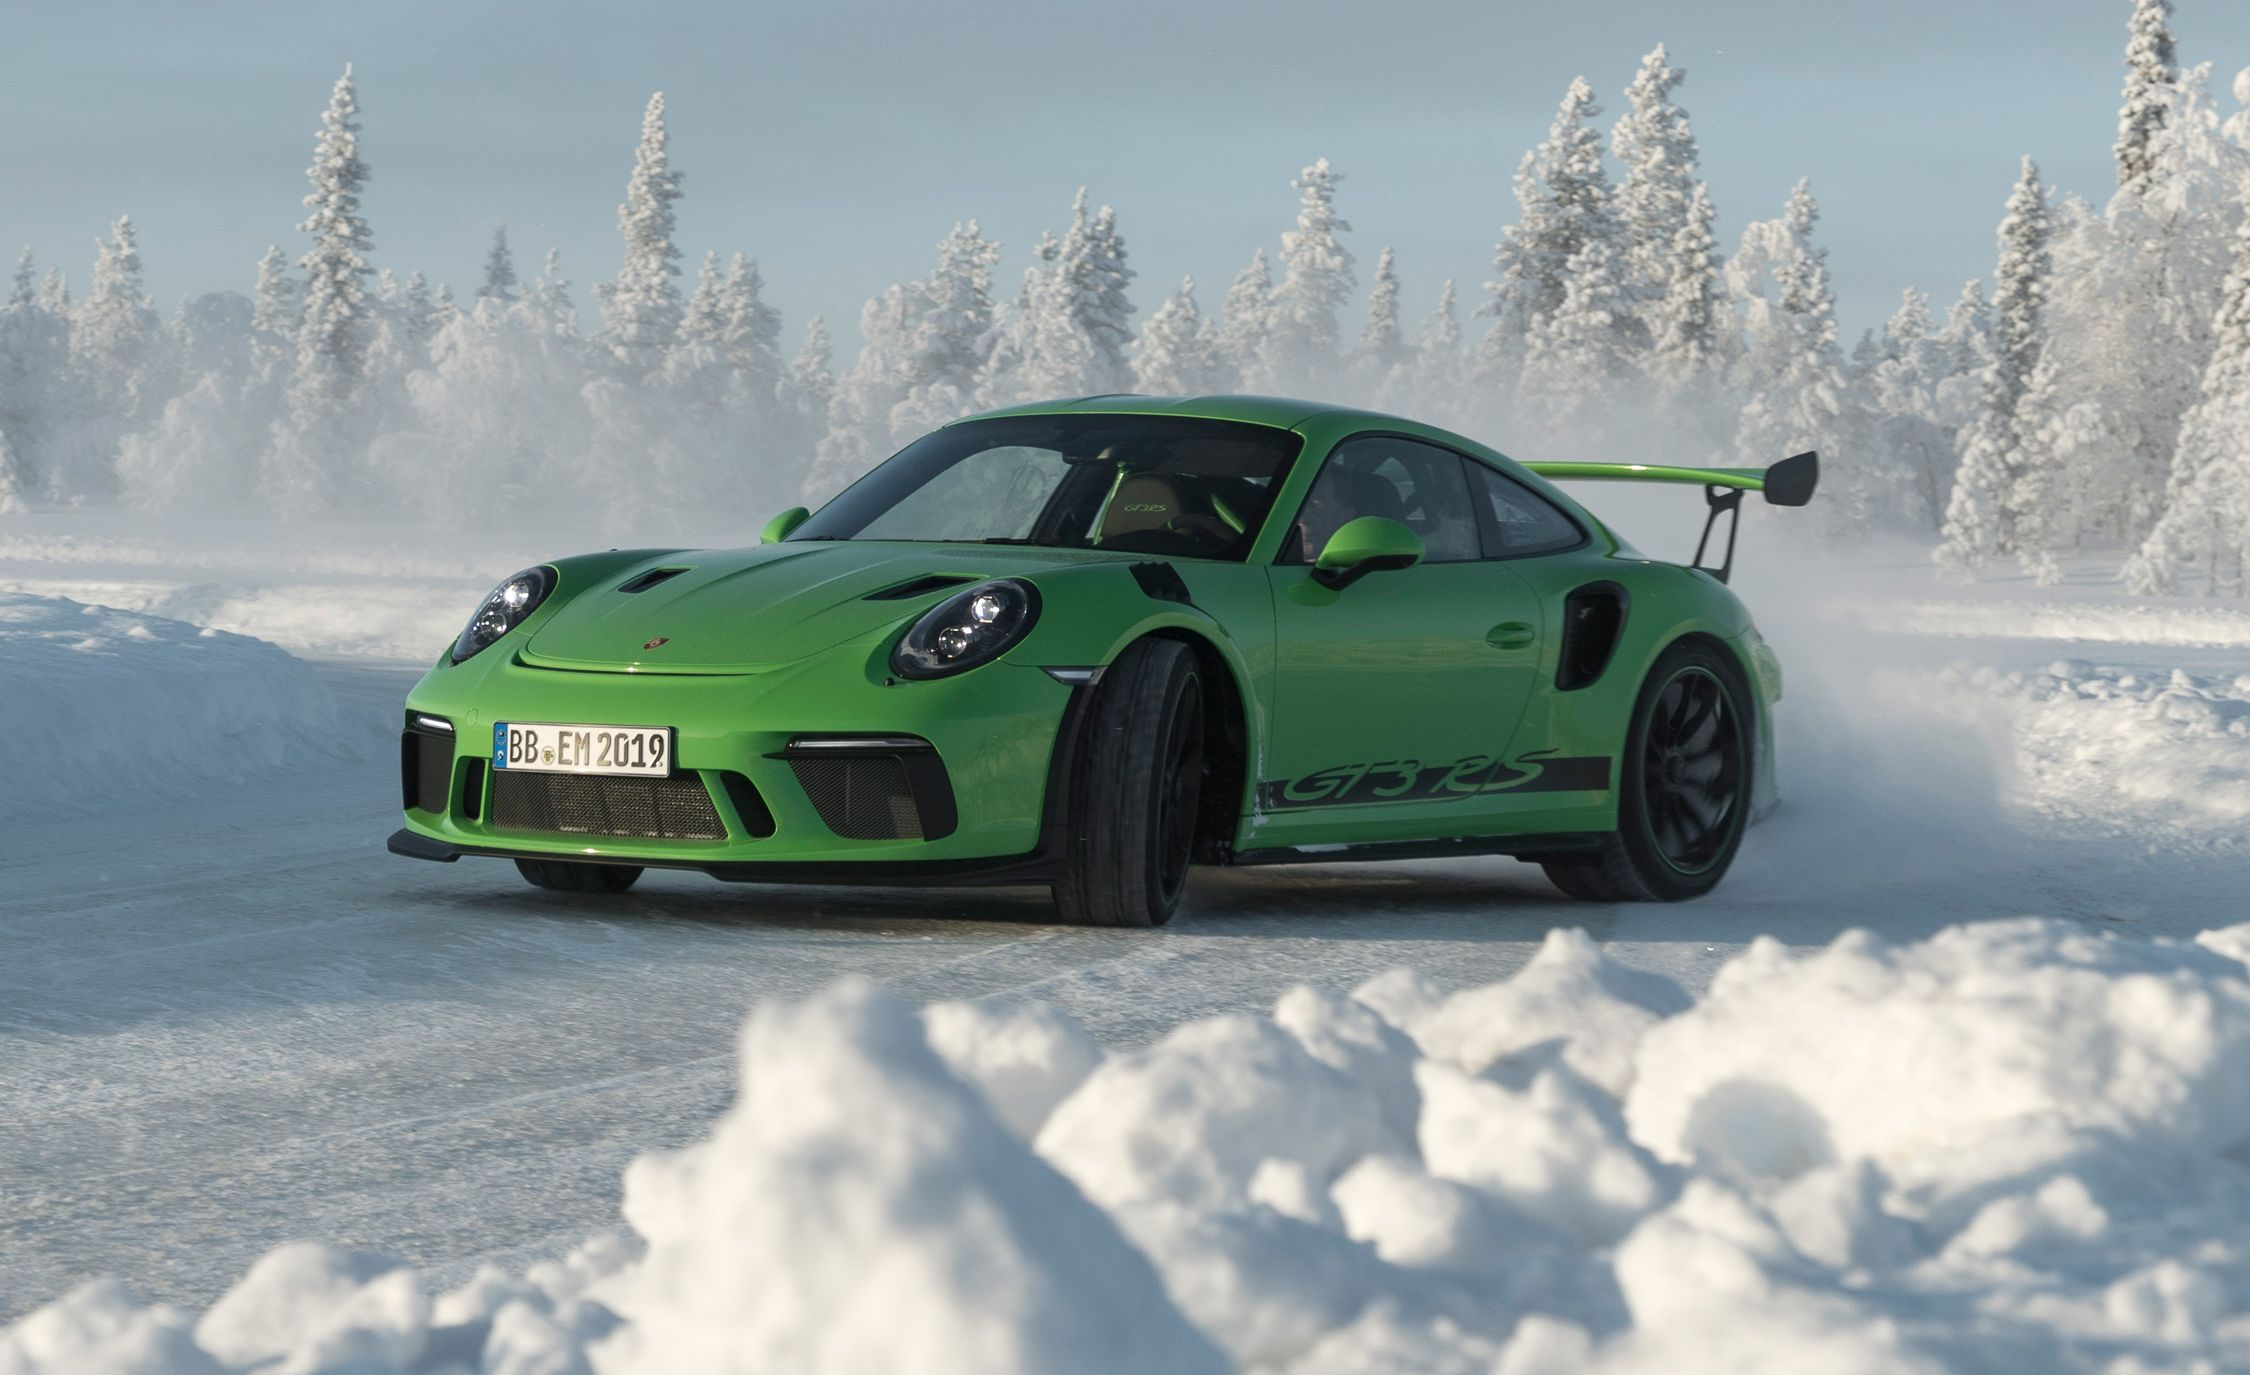 2021 Porsche 911 Gt3 Gt3 Rs Reviews Porsche 911 Gt3 Gt3 Rs